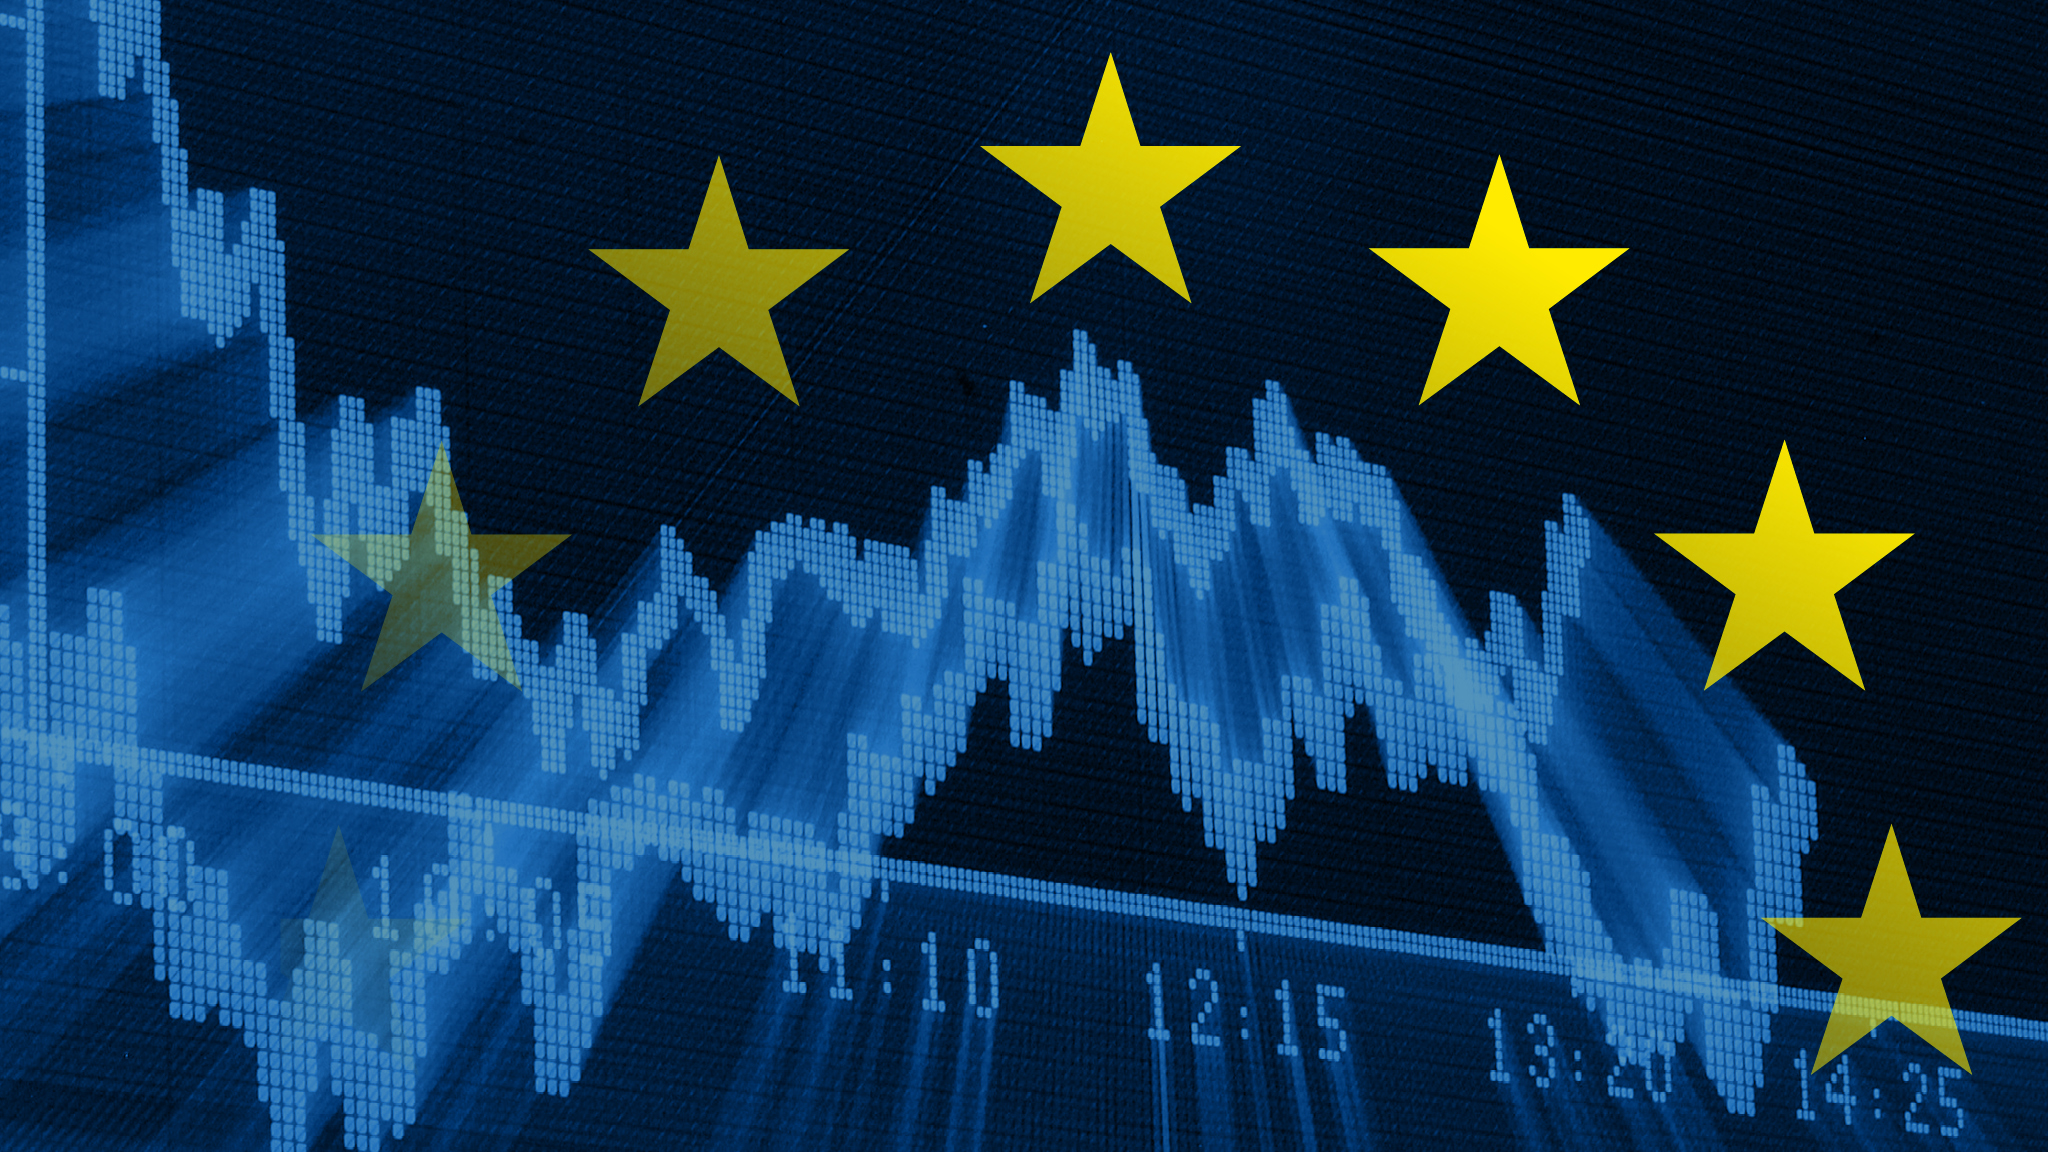 ETF providers hope Mifid II will spur European growth